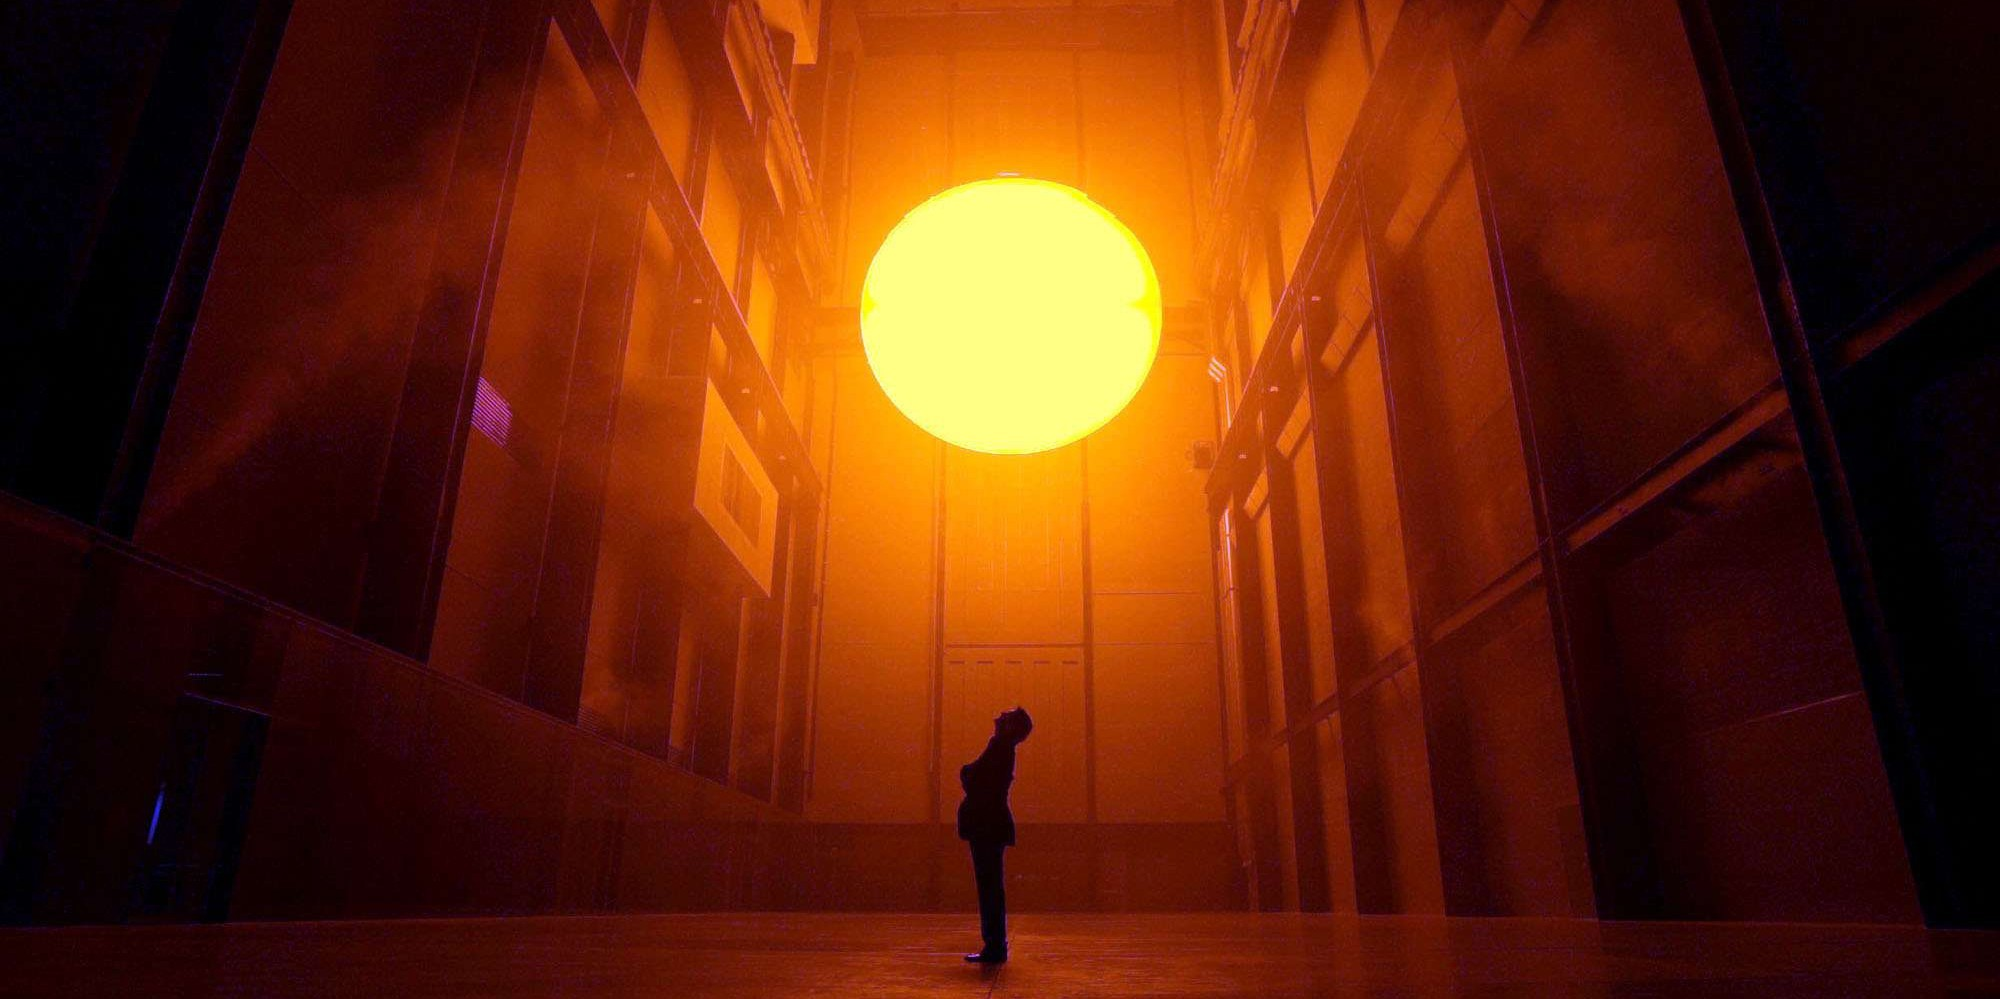 """Danish environmental sculptor Olafur Eliasson, stands in the Turbine Hall at the Tate Modern art museum in London and looks up at his art work entitled """"The Weather Project,"""" in this Oct. 15, 2003 file photo. Eliasson has used mirrors, light, sound and mist to create a monochrome space that exposes and confronts the visitor."""